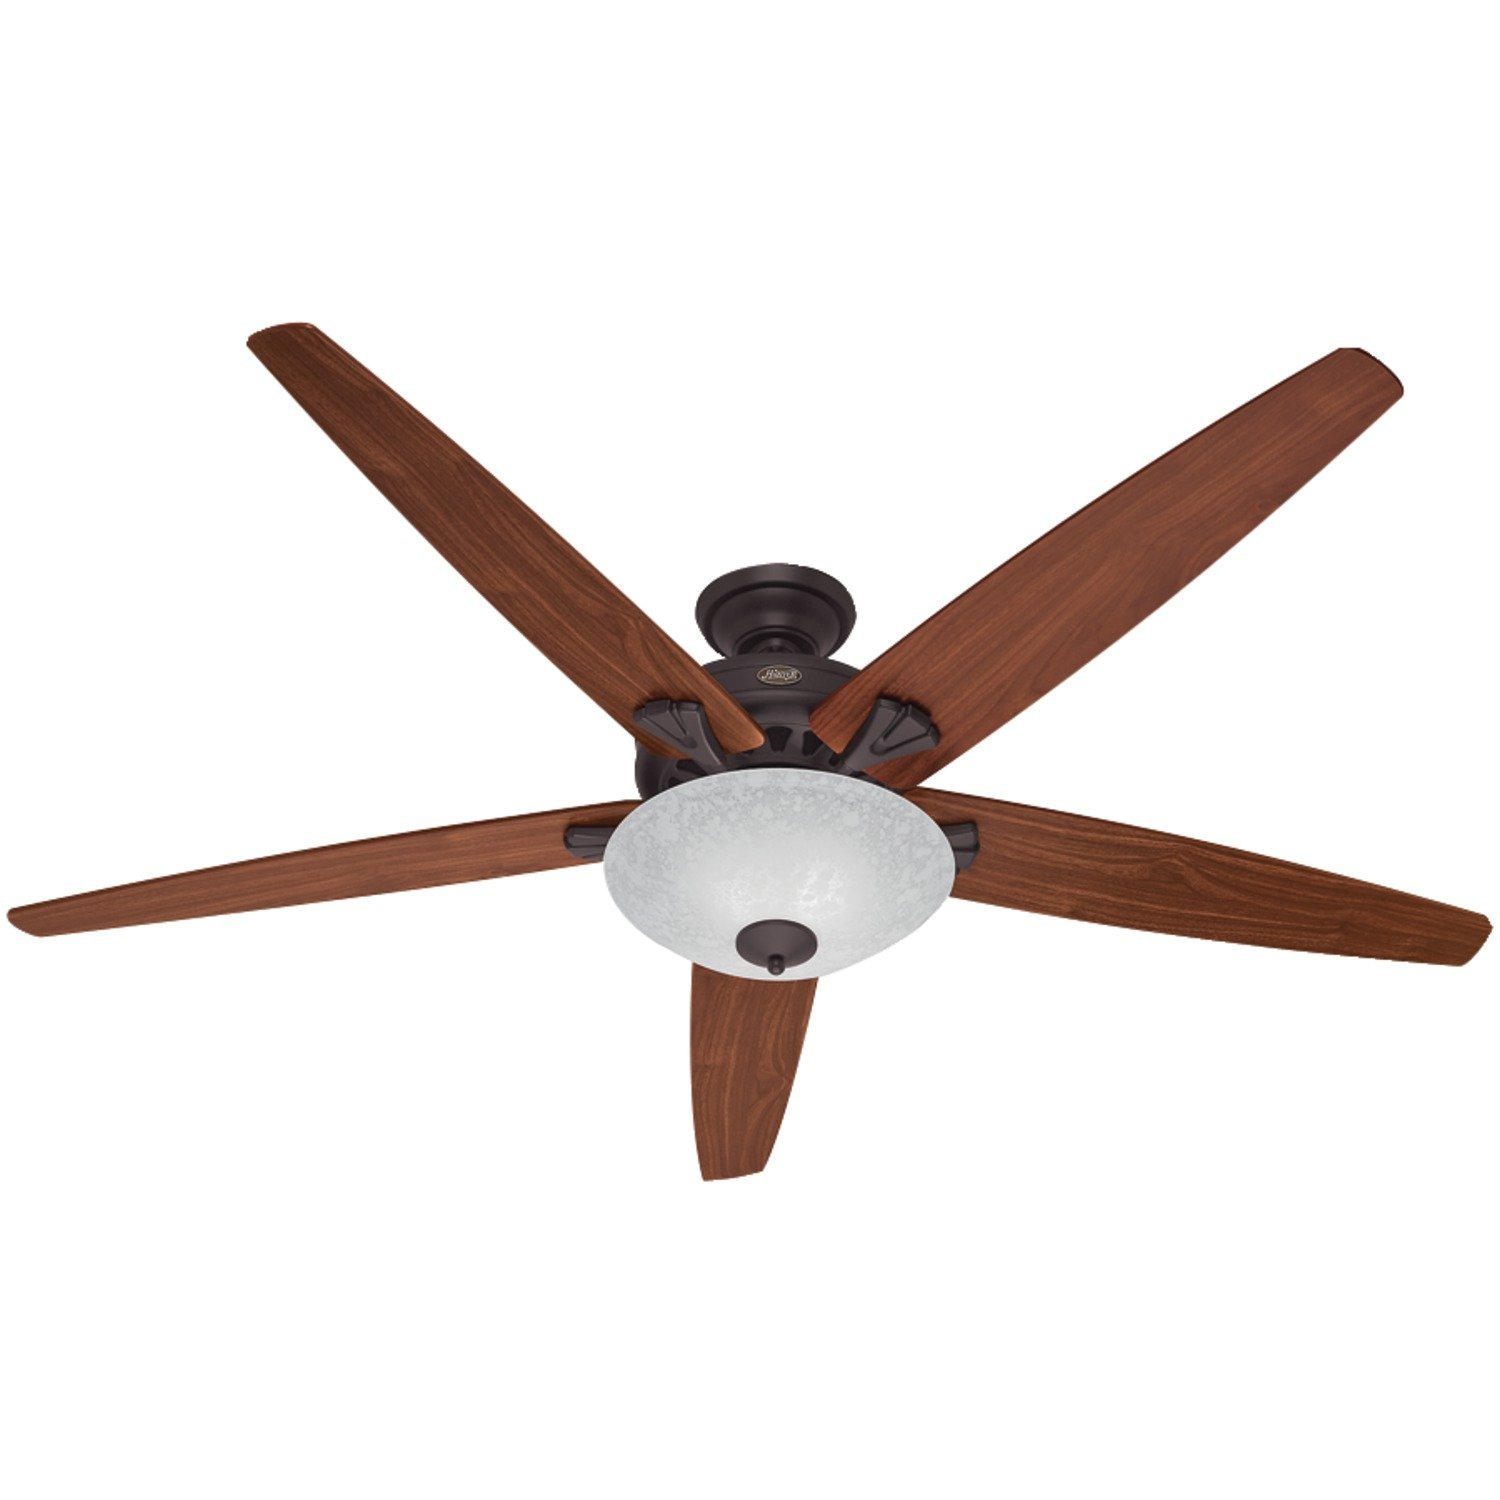 Hunter Fan Company 55042 Stockbridge 70-Inch Ceiling Fan with Five Walnut/Medium Oak Blades and Light Kit, New Bronze